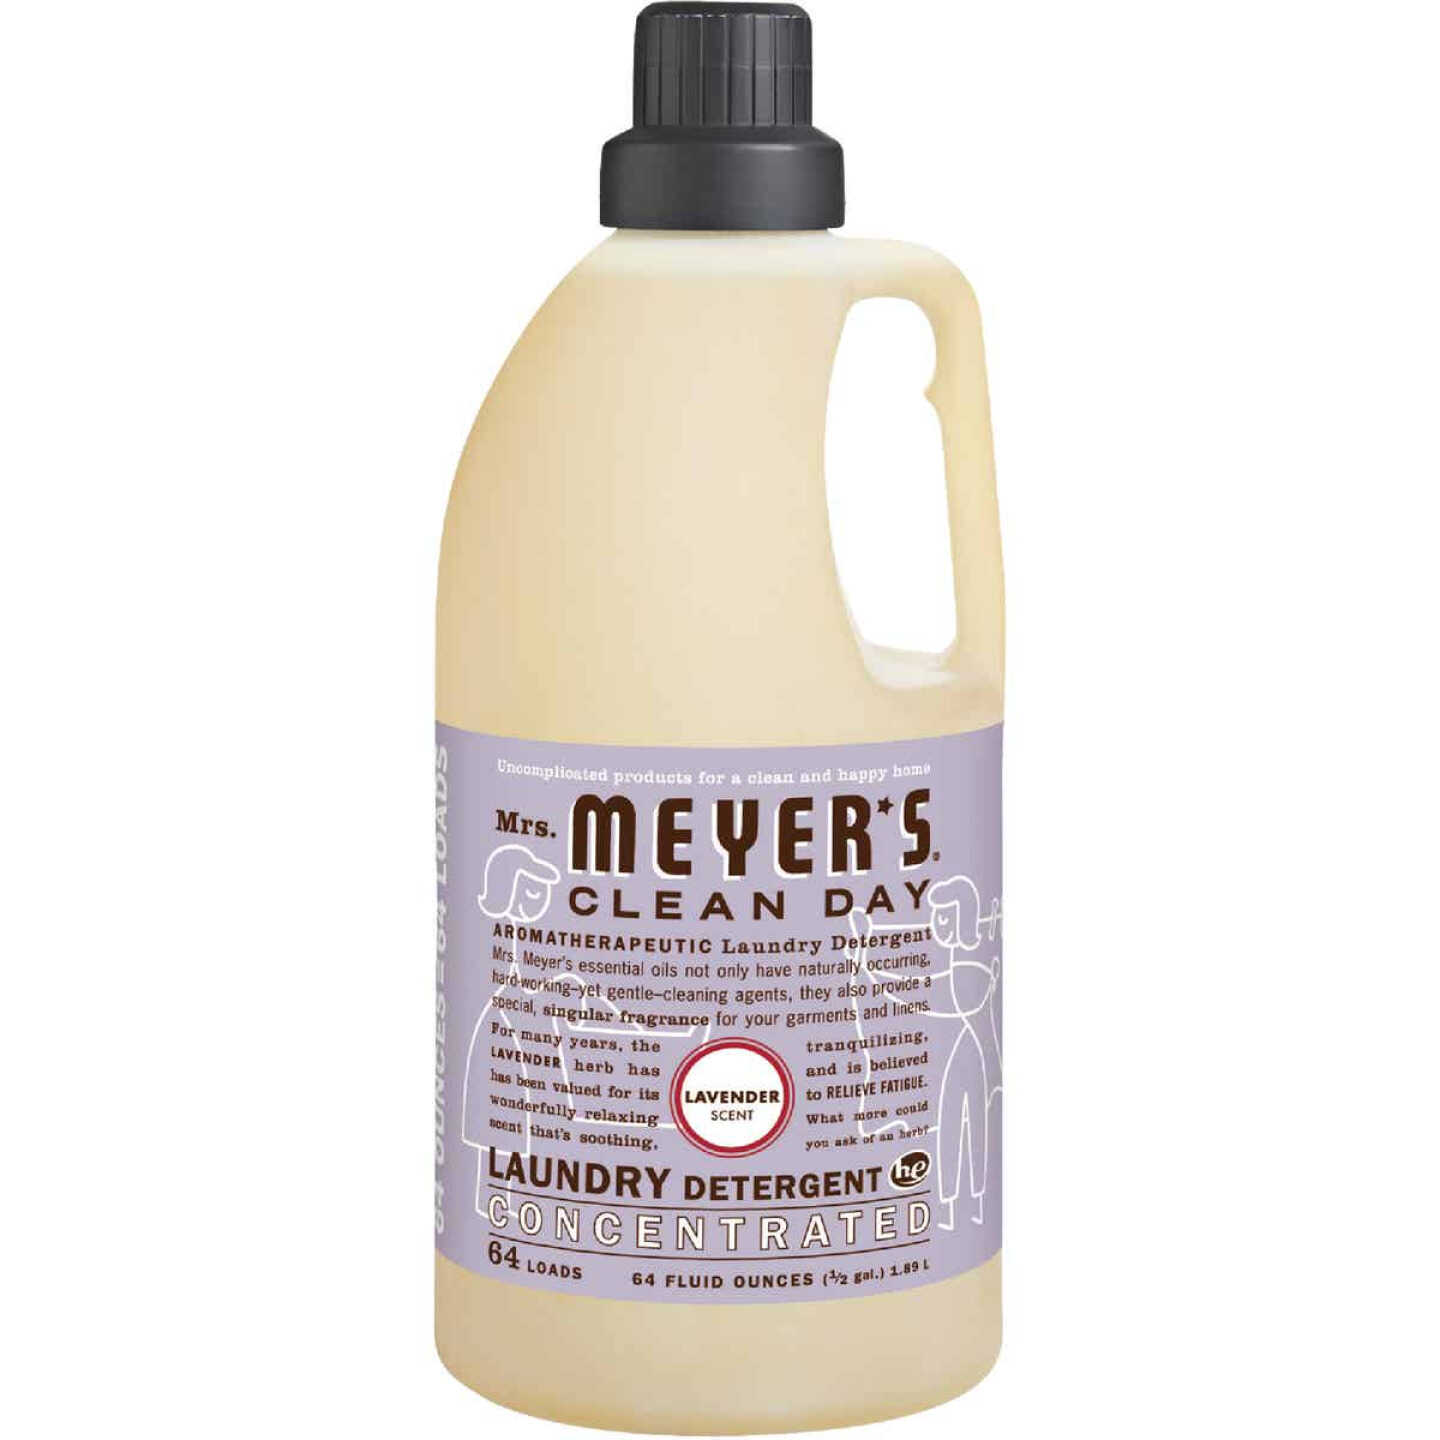 Mrs. Meyer's Clean Day 64 Oz. Lavender Concentrated Laundry Detergent Image 1